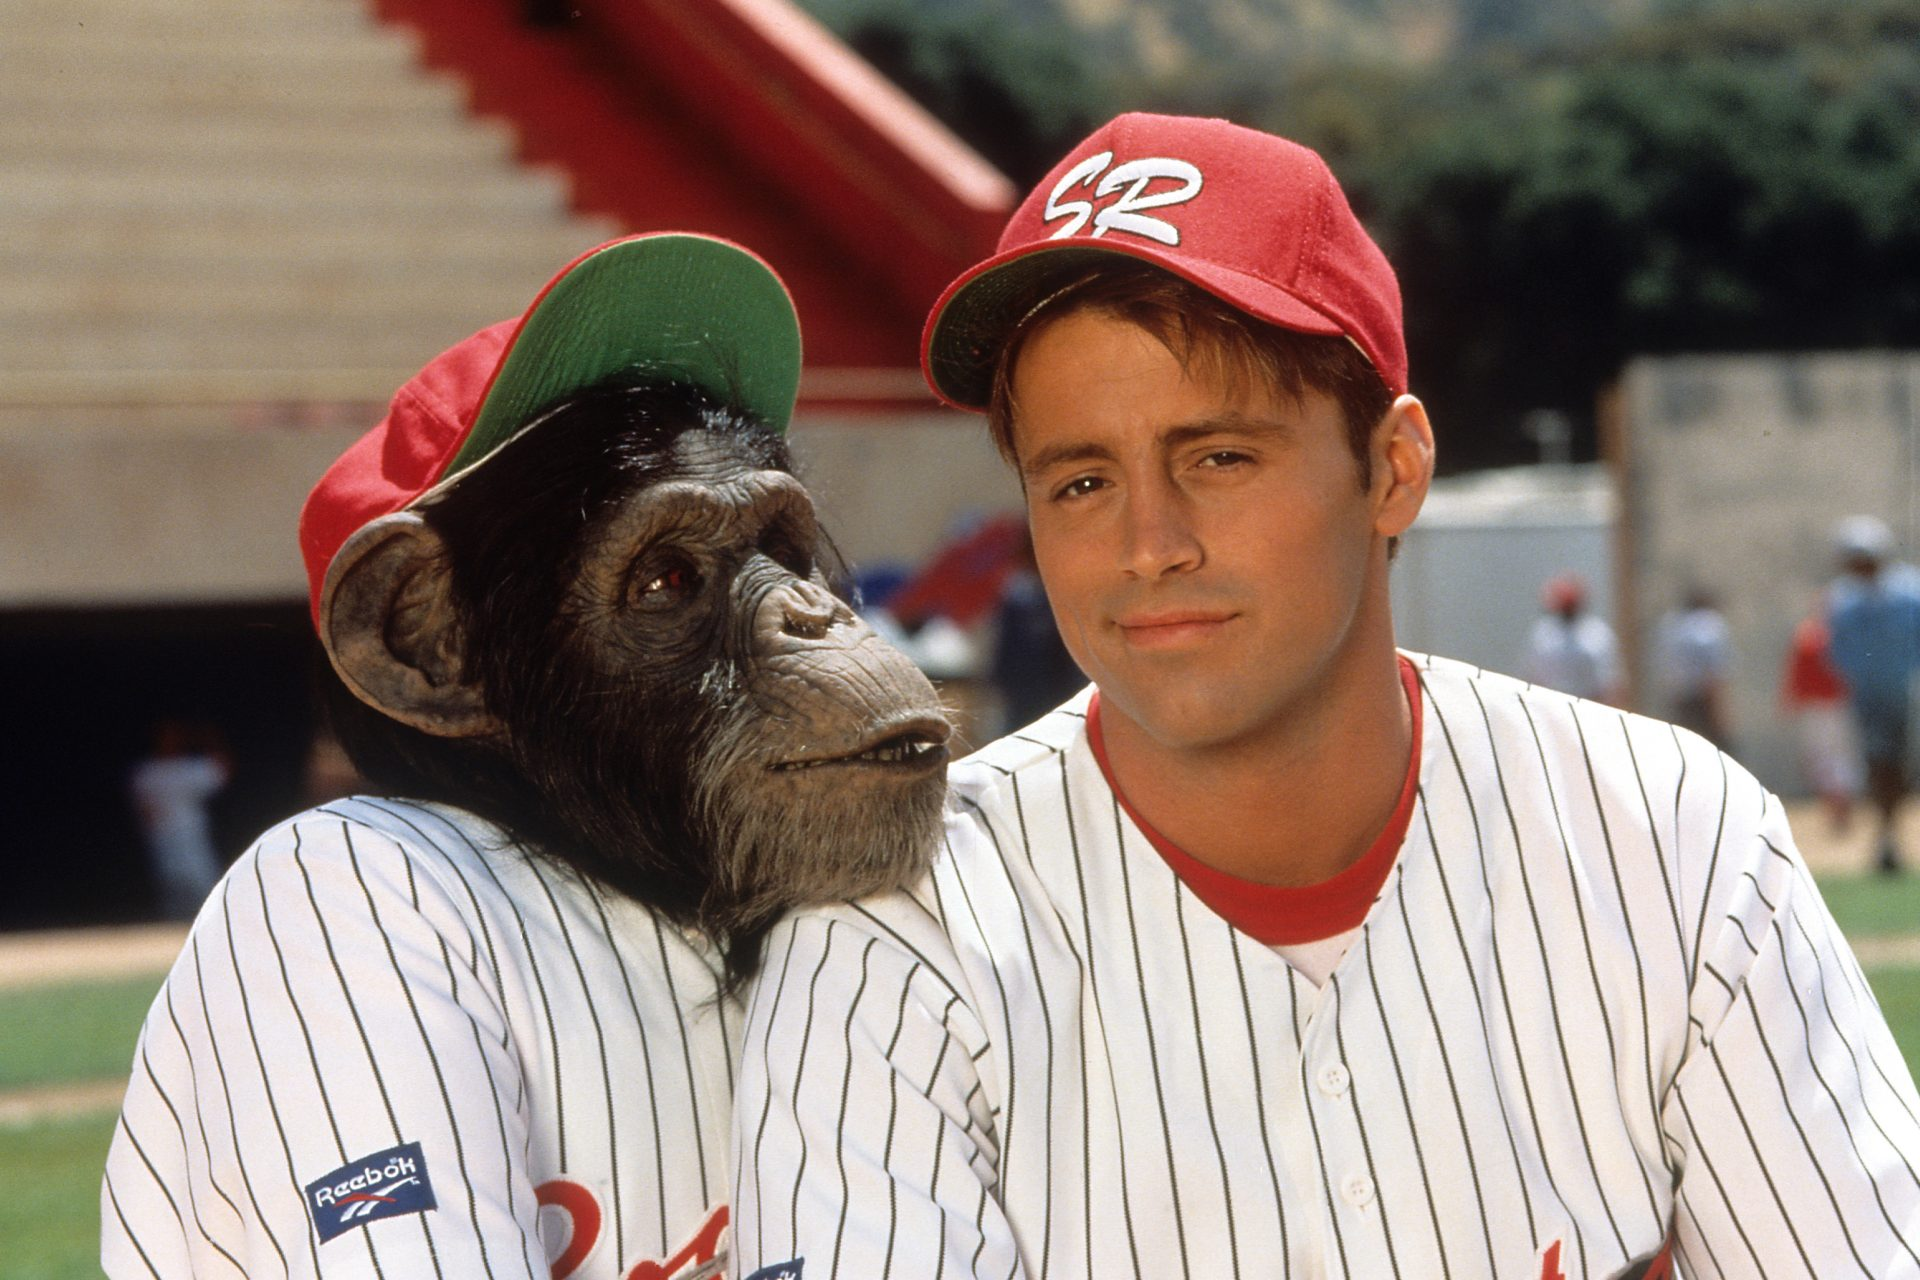 Matt Leblanc's rise to fame, life after 'Friends', and shocking scandals!